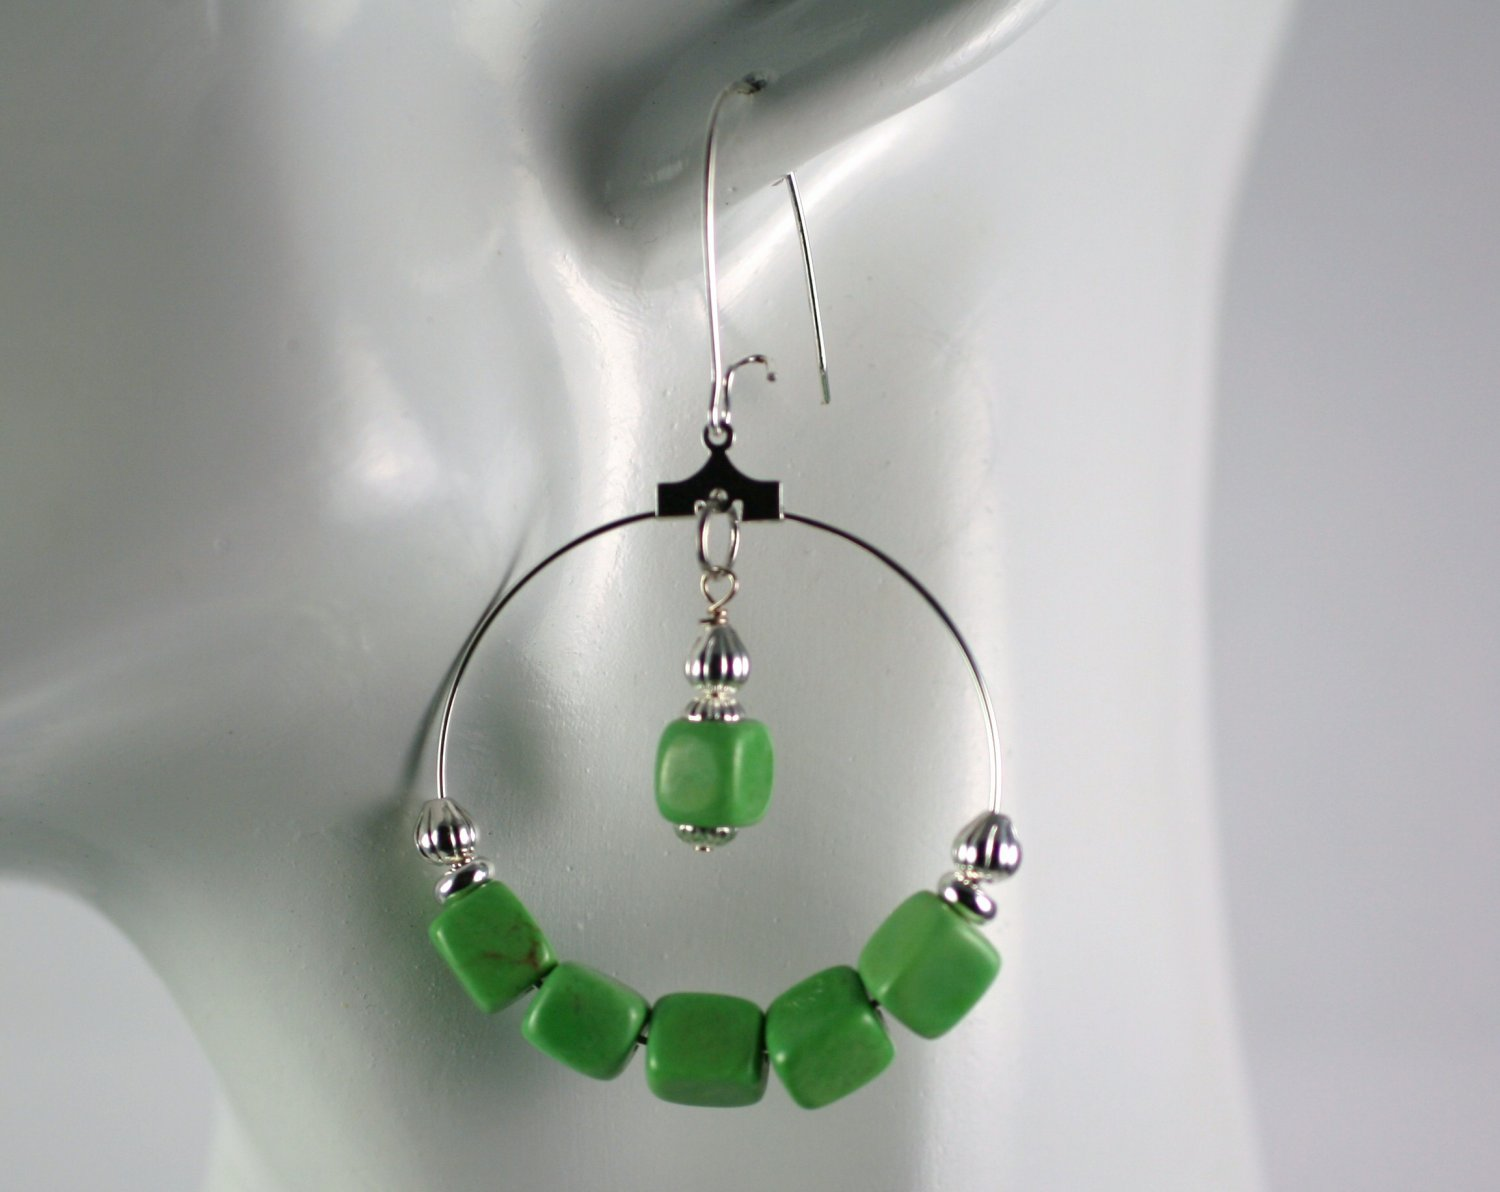 Silver Hoop Earrings with Green Turquois Cube Beads 1.5 in.  Handcrafted Jewelry